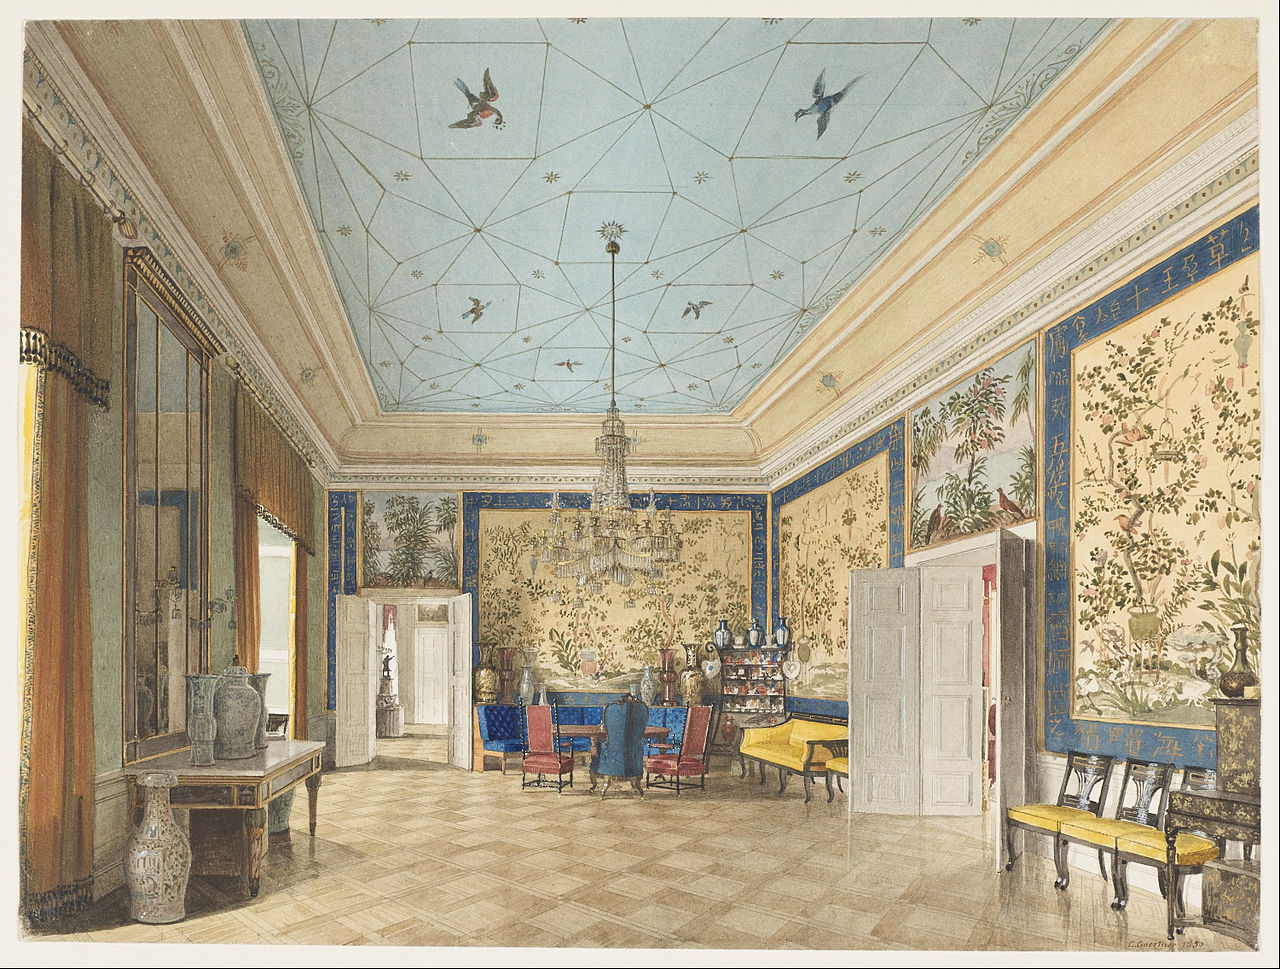 File:Eduard Gaertner - The Chinese Room in the Royal ... - photo#11